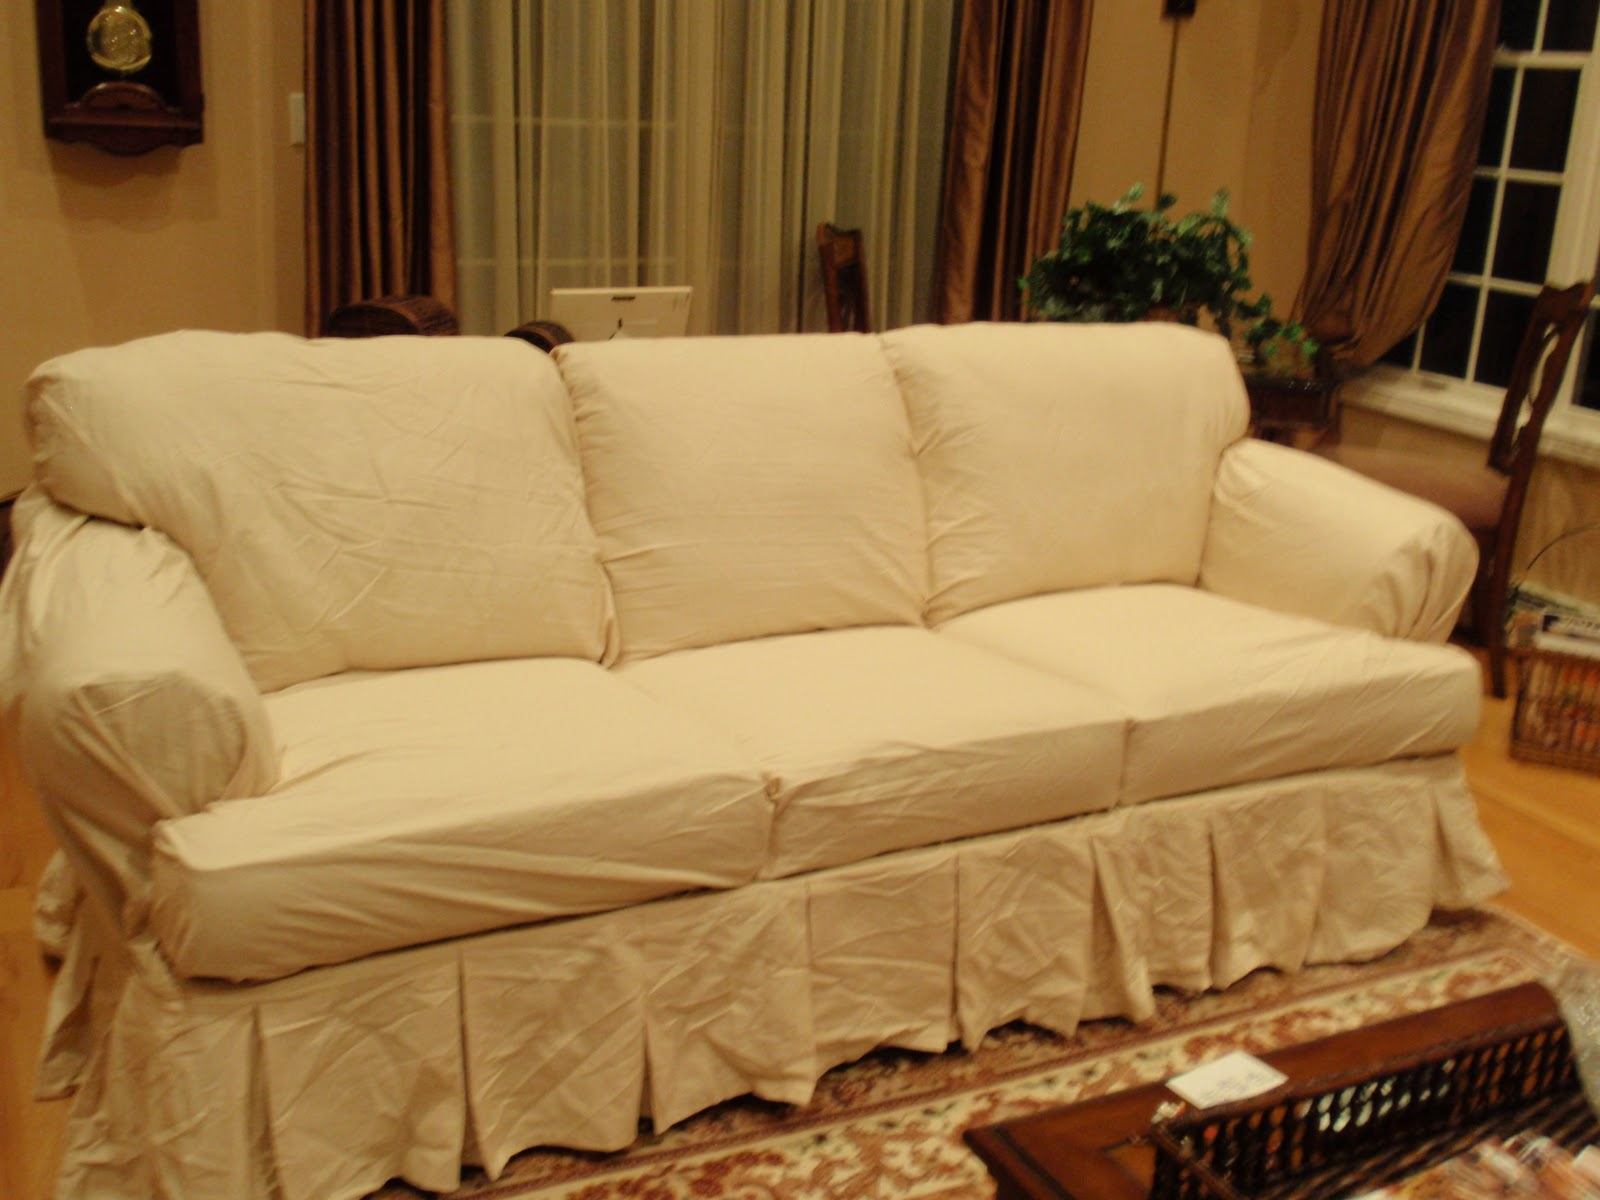 Sofa Slipcovers Nine Cushion Sofa Slipcover Slipcovers For